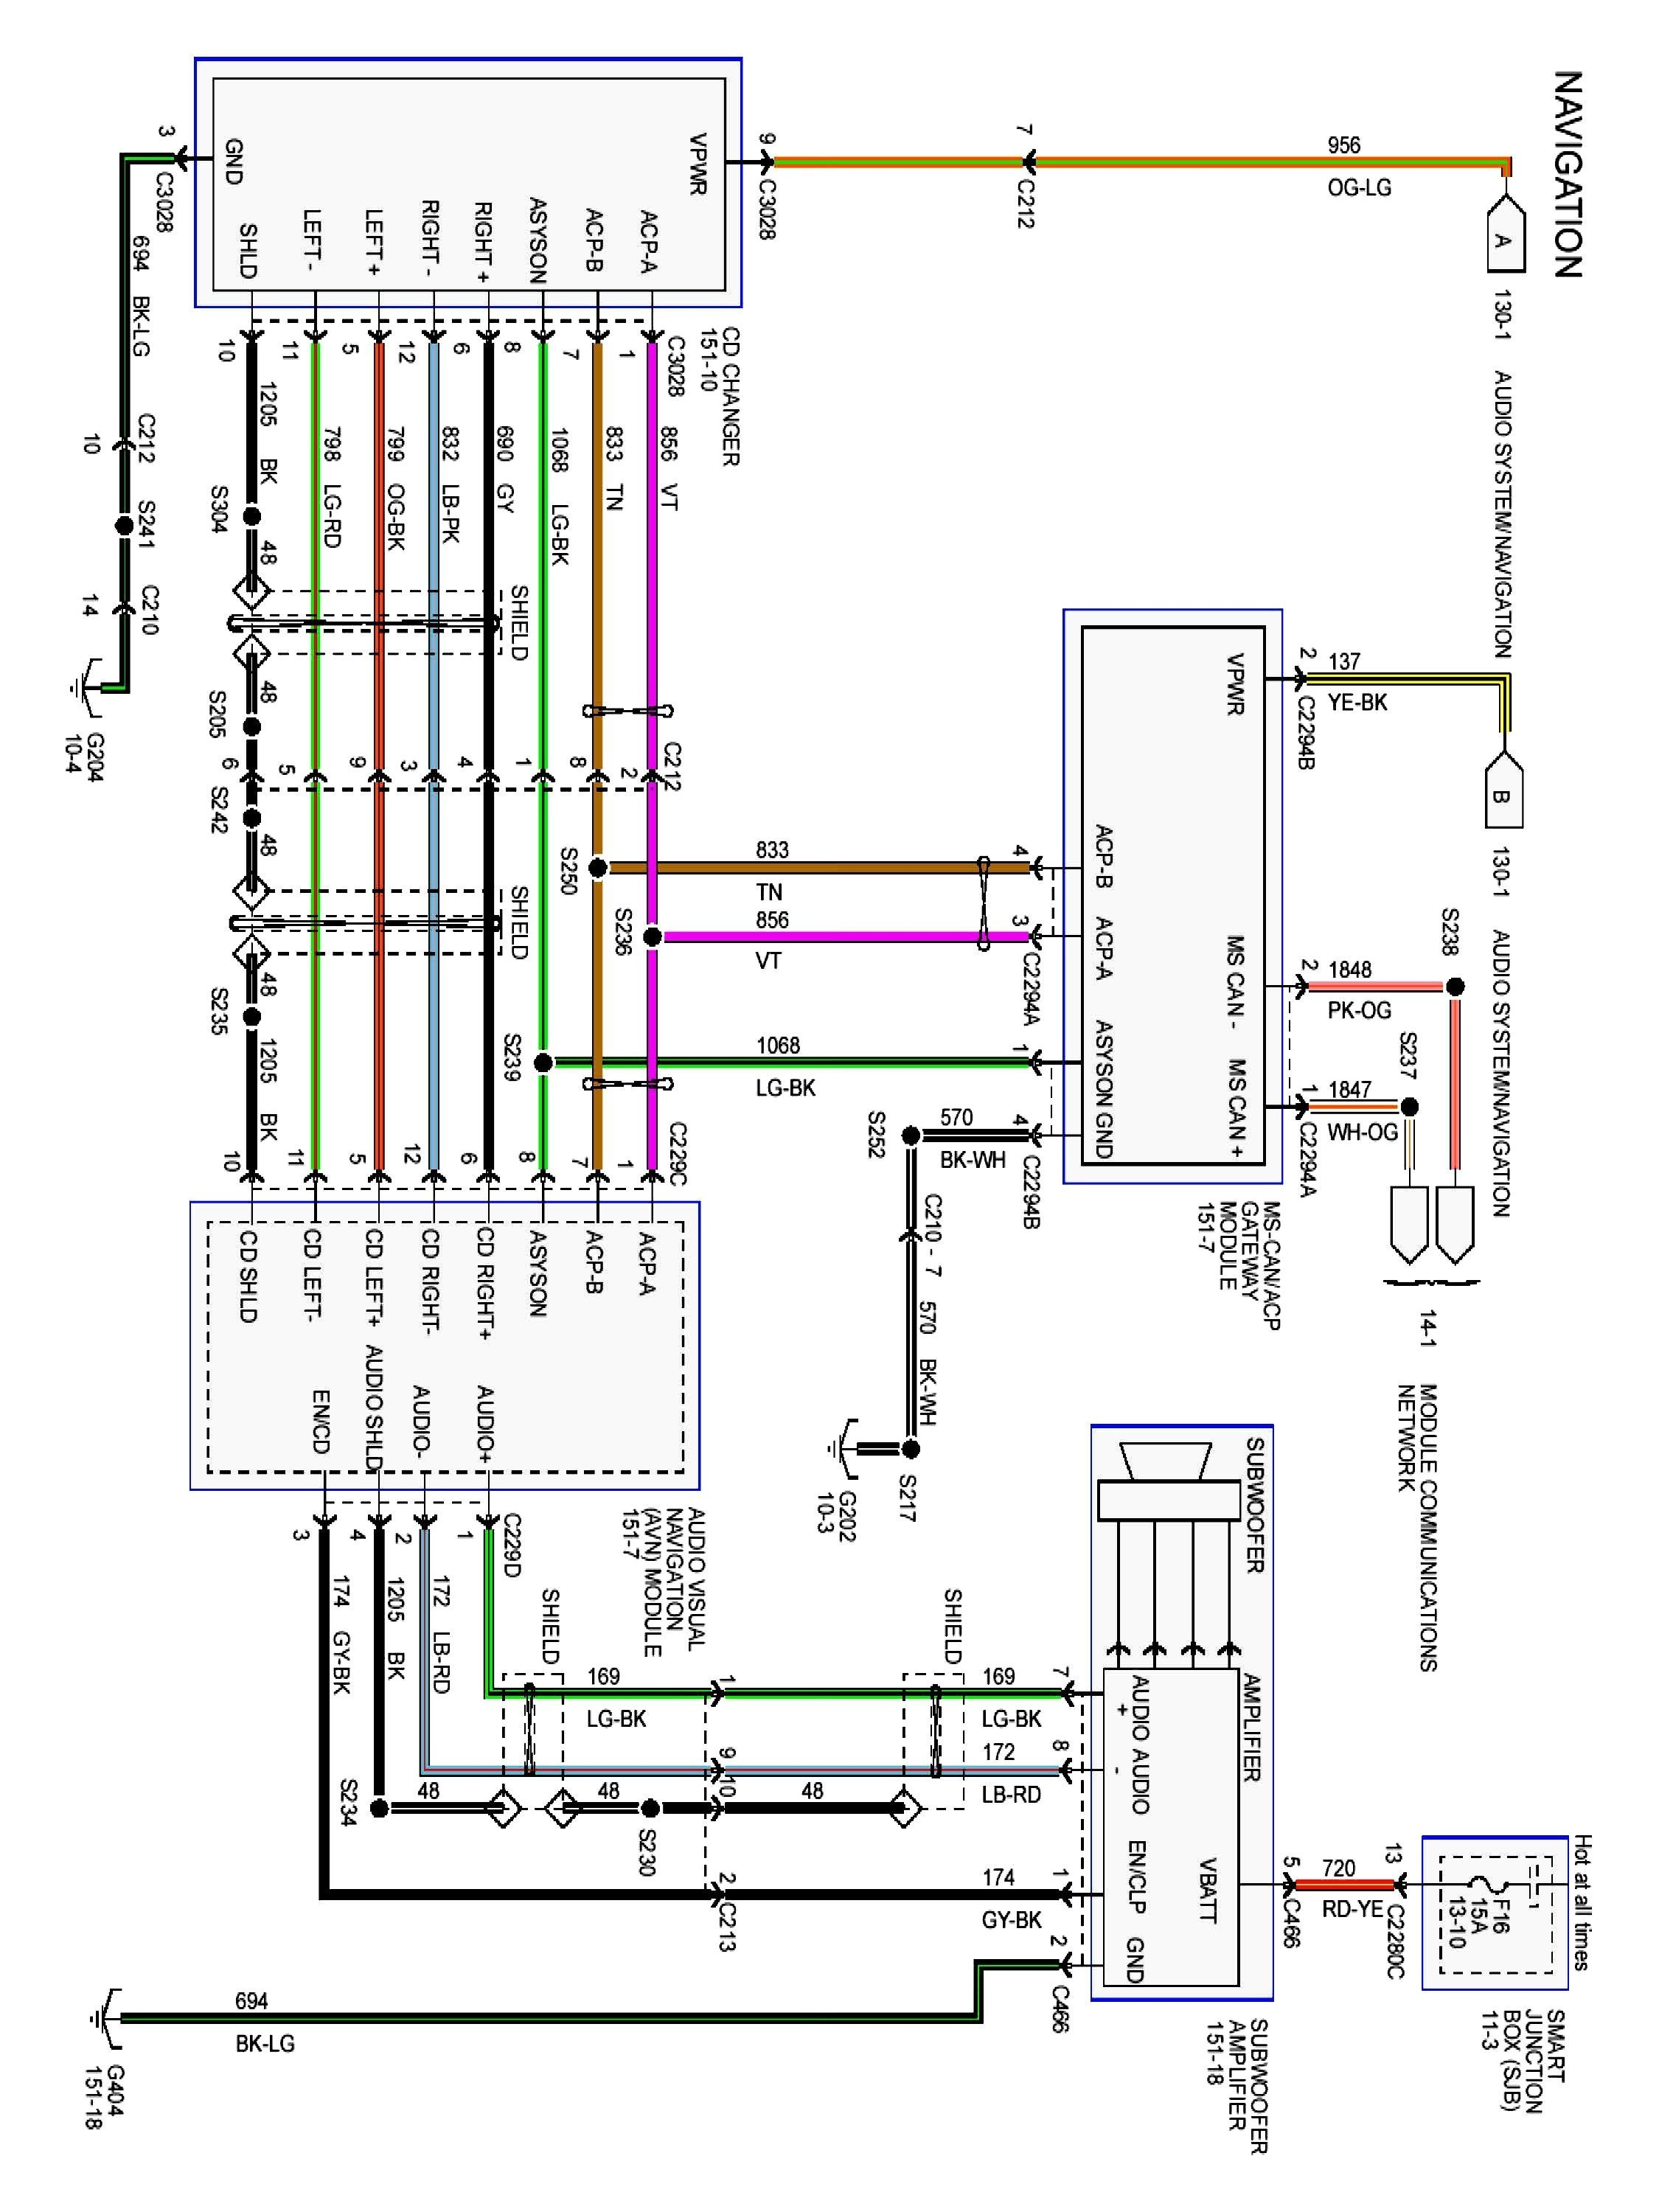 2010 ford Fusion Engine Diagram 2007 ford Edge Wiring Diagram Wiring Diagram Paper Of 2010 ford Fusion Engine Diagram